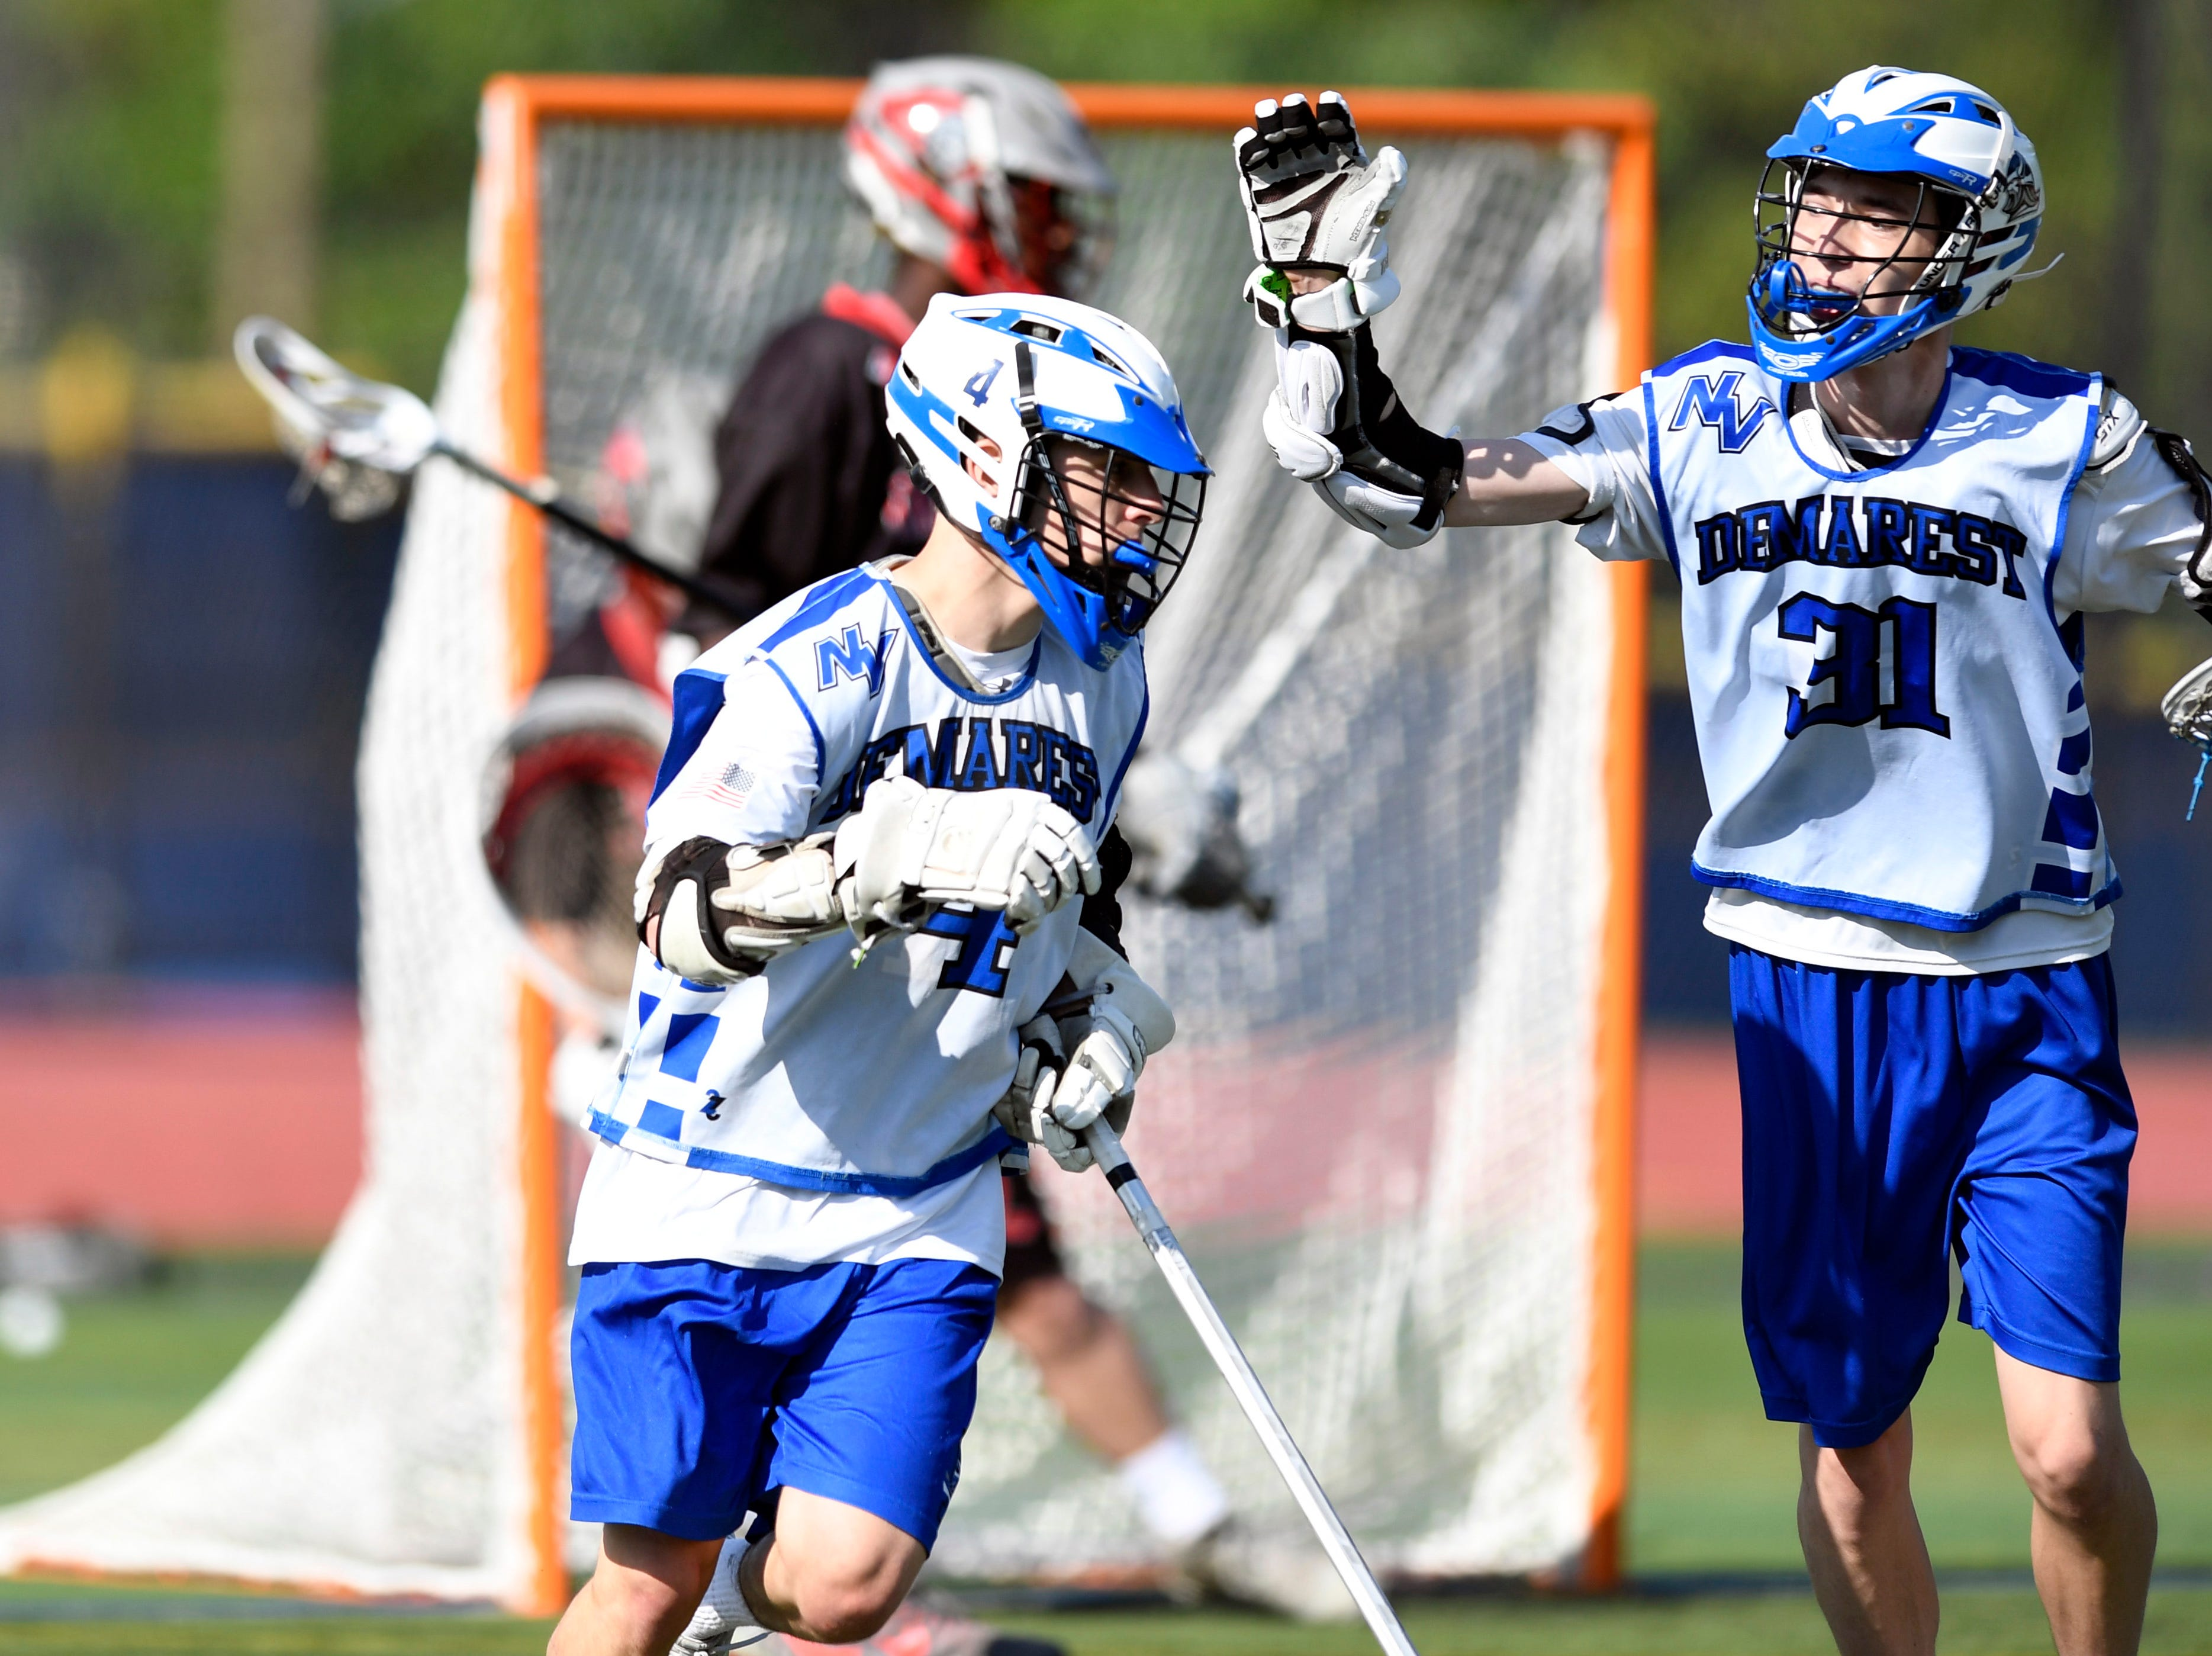 Demarest's Travis Hinds, left, and Matt Pluzsik celebrate Hinds' goal against Lakeland. Northern Valley Demarest defeated Lakeland 6-3 in the first round of the North Group 2 boys lacrosse tournament on Wednesday, May 15, 2019 in Demarest, NJ.